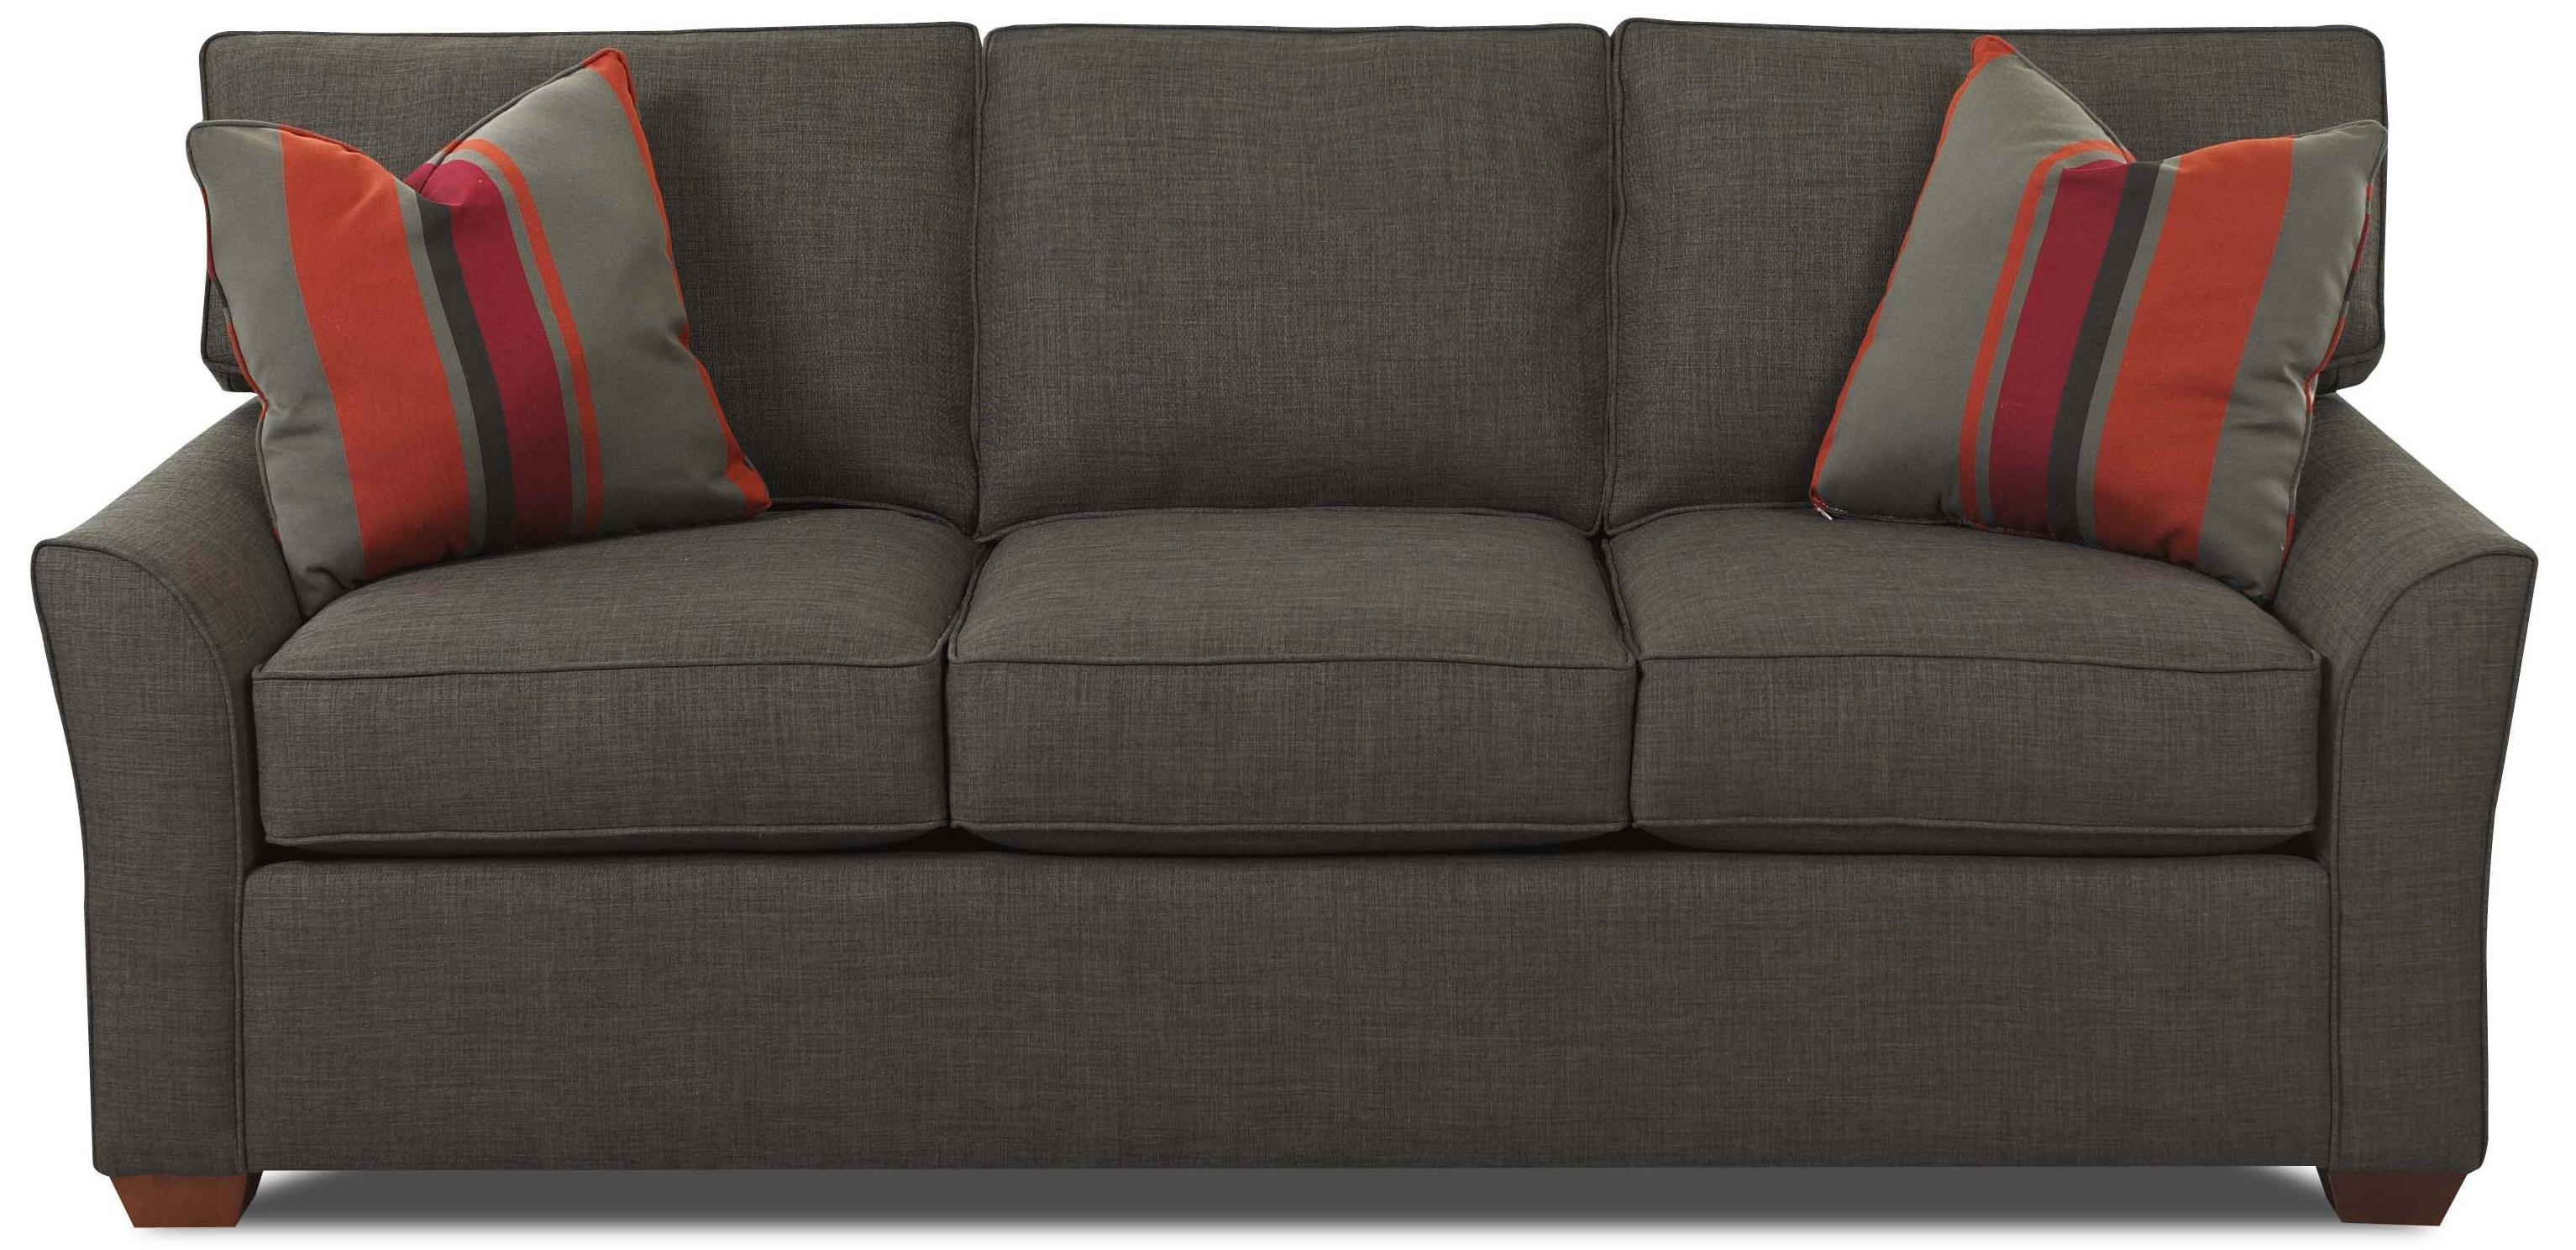 contemporary 3 seat sofa with box seat cushions by klaussner